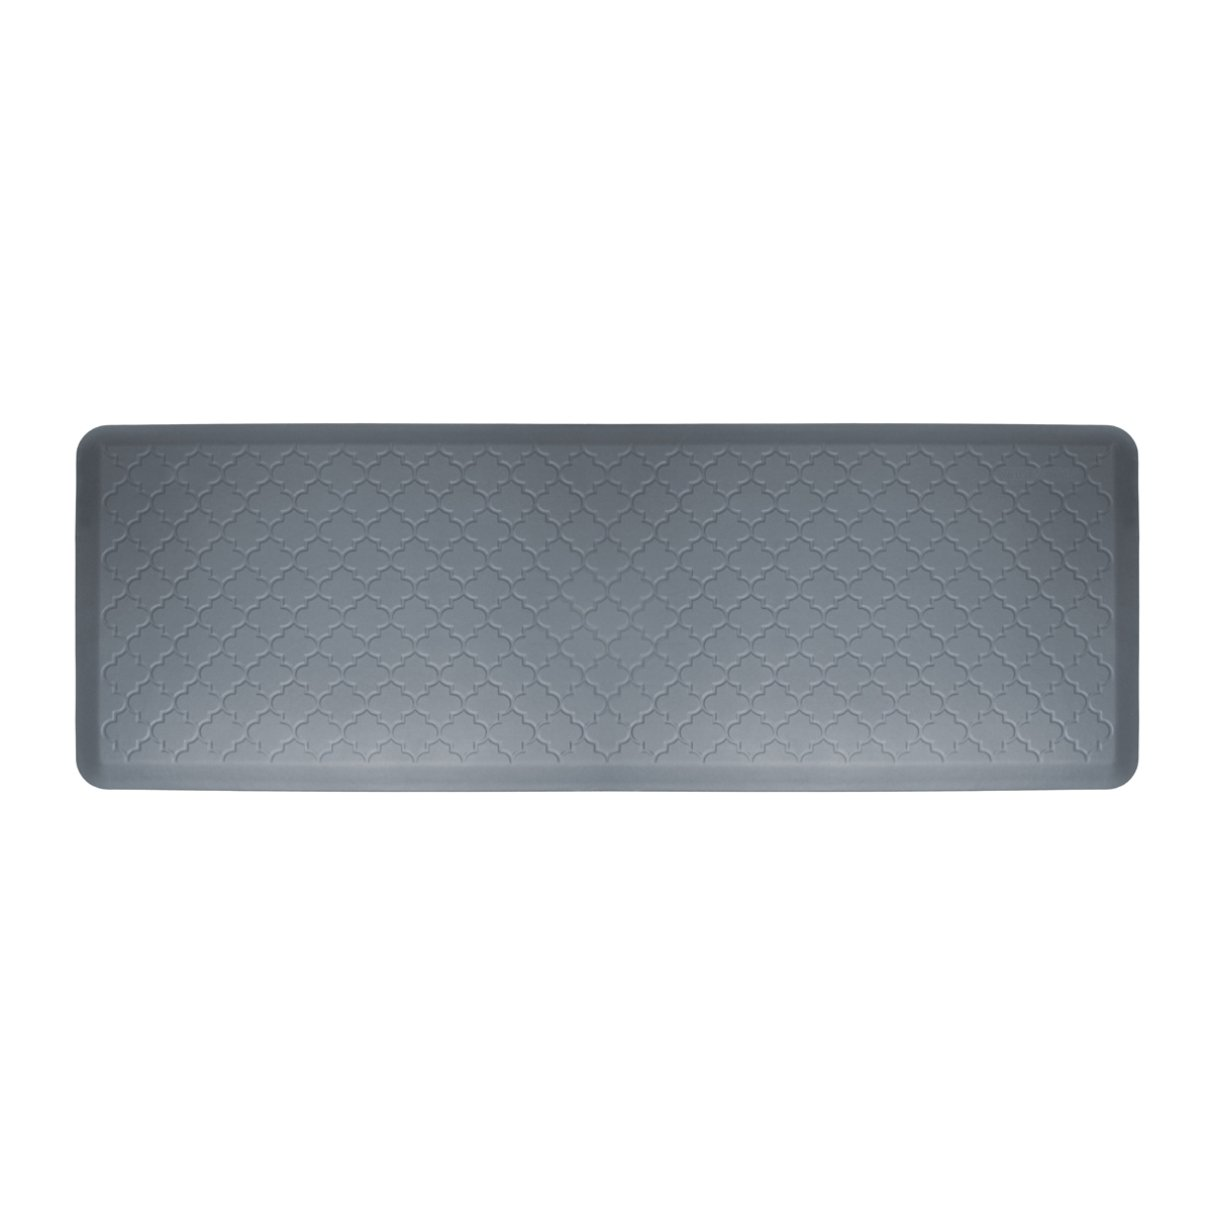 WellnessMats Anti-Fatigue Trellis Motif Kitchen Mat, 72 Inch by 24 Inch, Grey